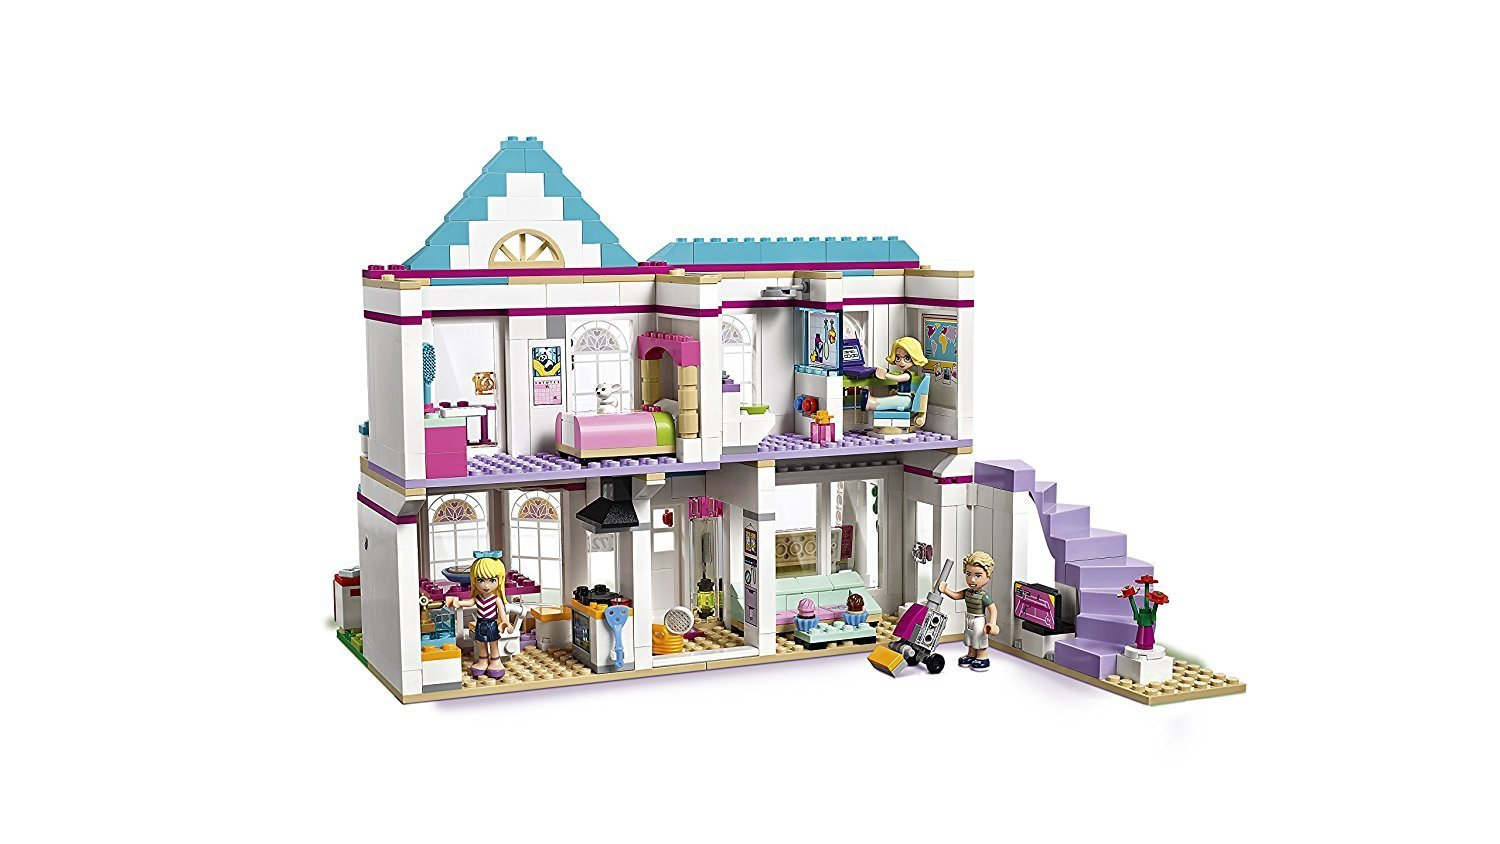 Lego Friends Badezimmer Lego Friends 41314 Stephanies Haus Potsdam Berlin Brandenburg